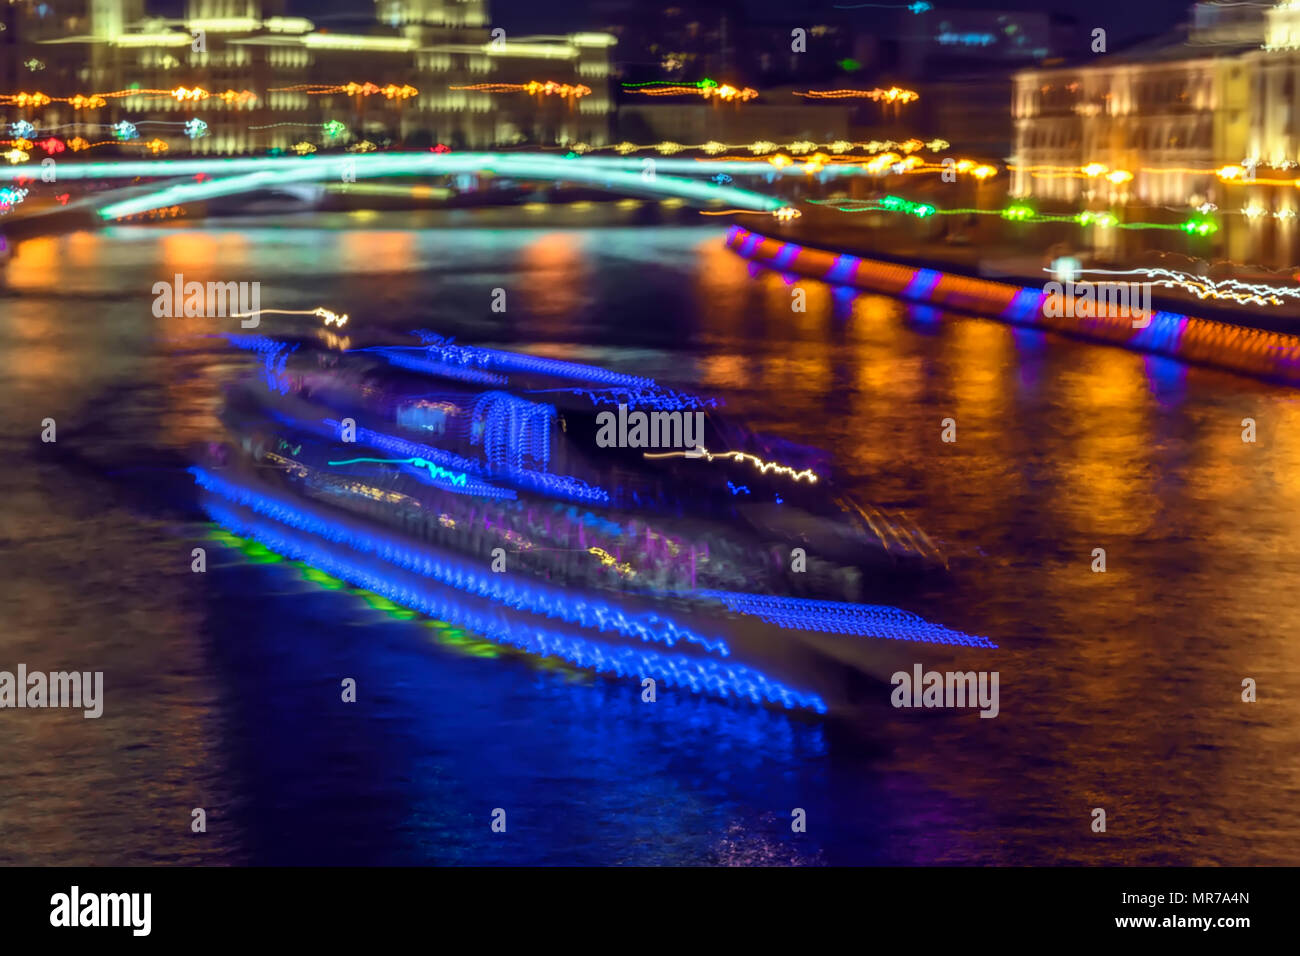 Abstract bright blurred colorful background of night city with ship for travels, excursions with tourists. Neon bright illumination at night on water. - Stock Image